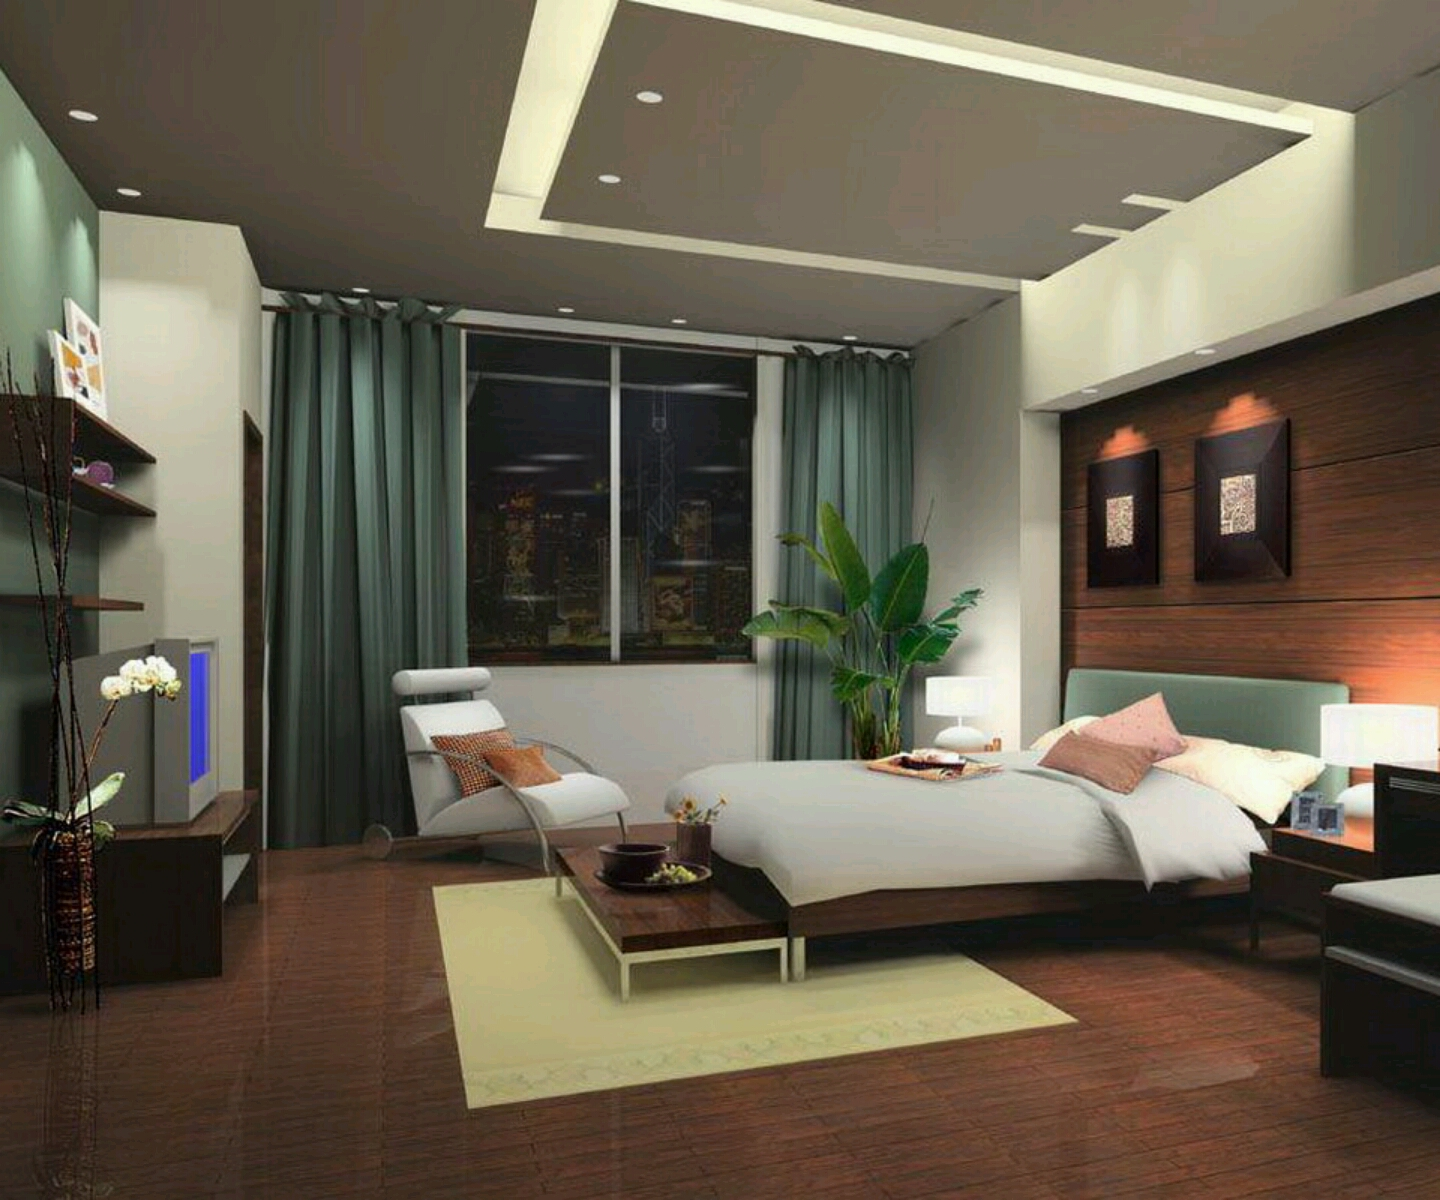 New home designs latest modern bedrooms designs best ideas for Latest bed design for bedroom